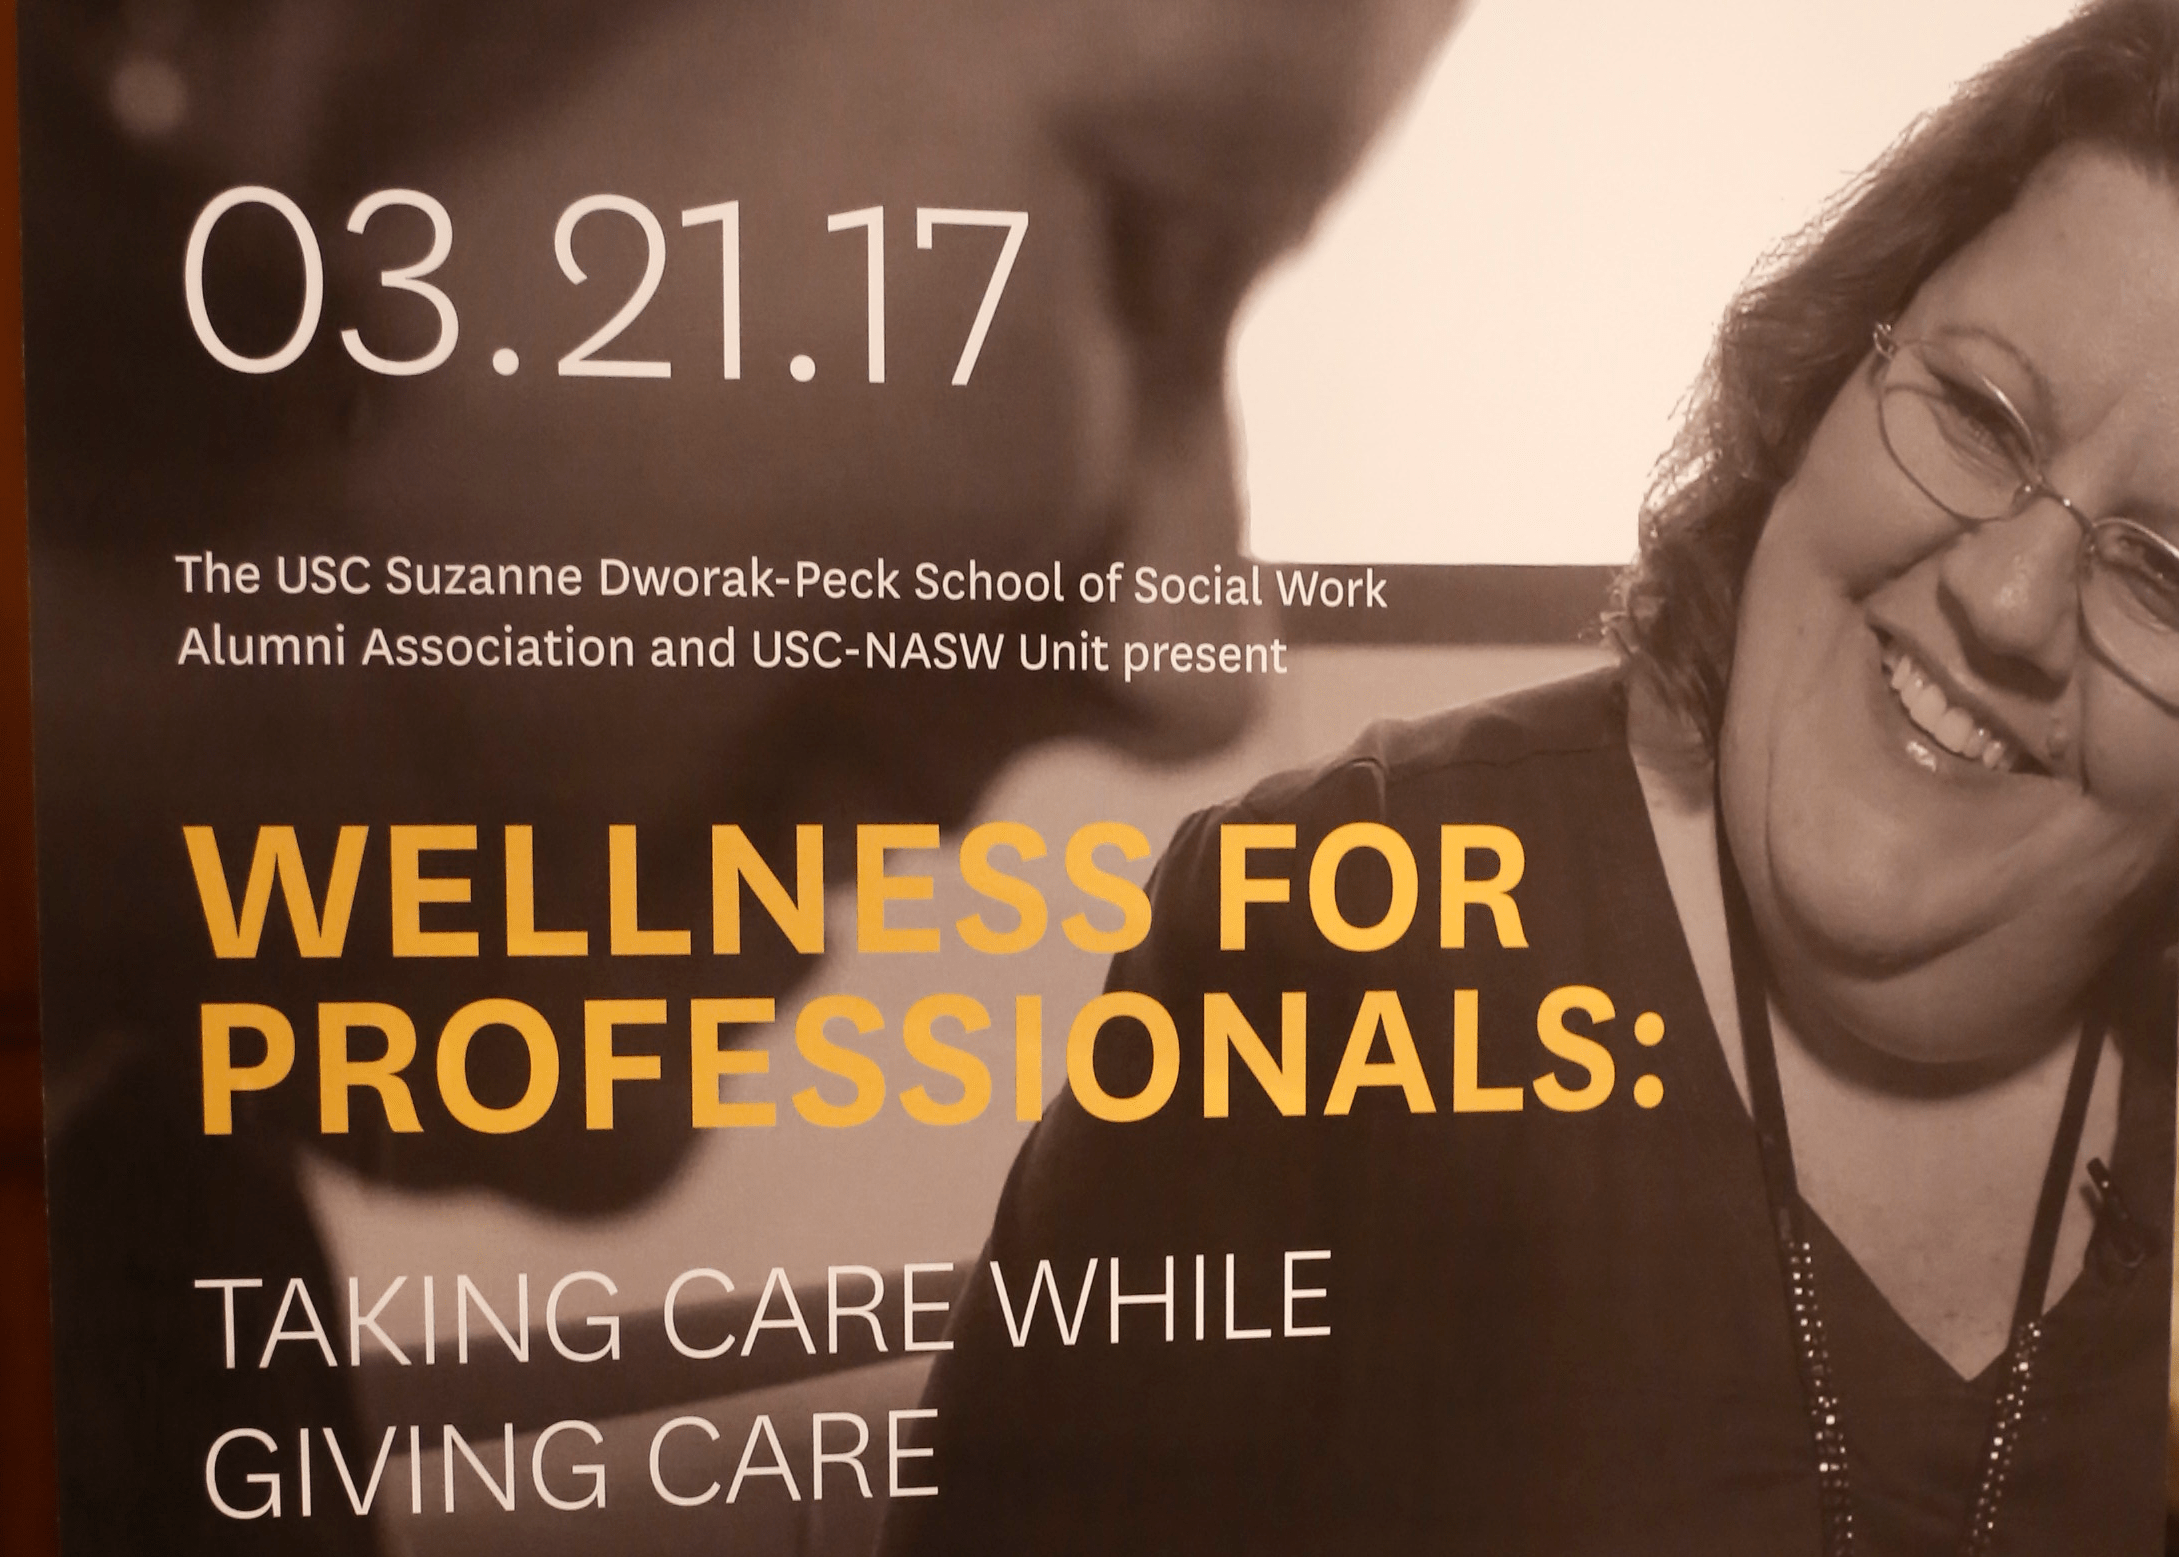 Wellness for Professionals